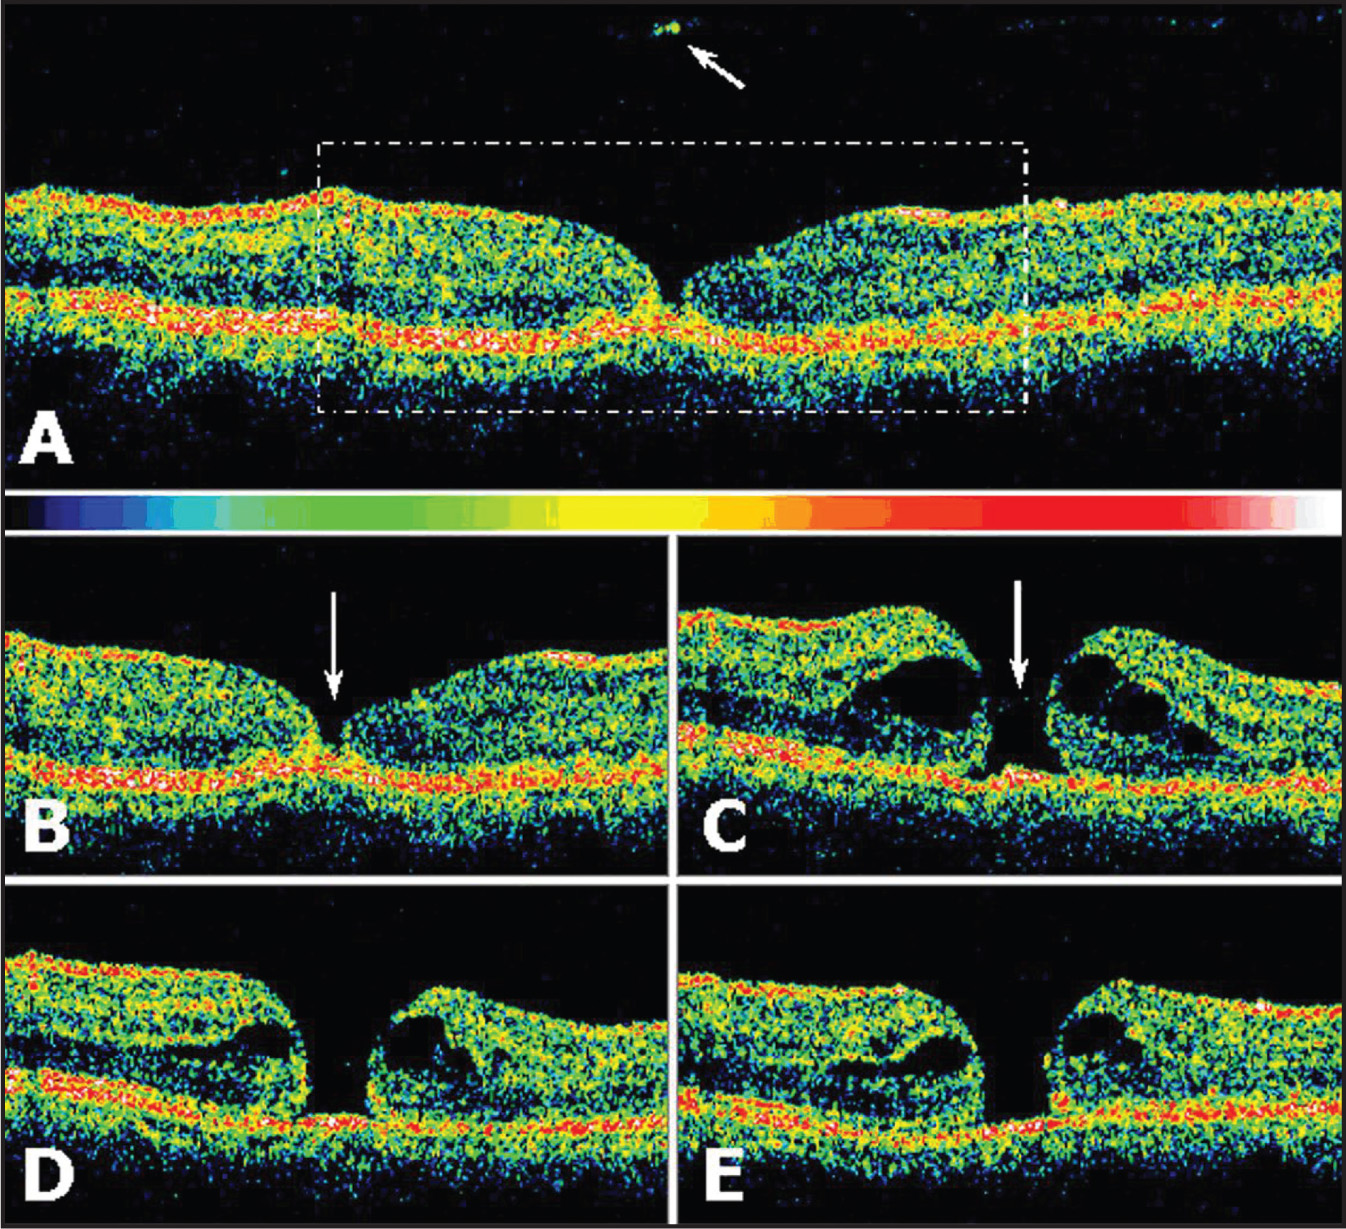 Third Generation Optical Coherence Tomography Scans of the Right Eye of a 27-Year-Old Man with Traumatic Lamellar Macular Hole (case 2). (A, B) at Presentation, a Horizontal (6 mm in Length) Scan Revealed Complete Detachment of the Posterior Hyaloid in the Macular Region. a Hyperreflective Structure Corresponding to the Pseudo-Operculum Was Seen in the Plane of the Detached Posterior Hyaloid over the Foveal Region (arrow). a Tiny Break Within the Inner Retina with Abnormal Reflective Signals from the Underlyingphotoreceptor Layerat the Center of the Fovea and Preserved Reflectivity from Perifoveal Retinal Layers Was Seen. (C) Six Weeks Later, a Scan Revealed a Full-Thickness Macular Hole (arrow) with Perifoveal Cystic Spaces at the Level of the Outer Plexiform Layer and Focal Attenuation of the Outer Highly Reflective Layer Corresponding to the Junction of the Inner and Outer Photoreceptor Segments. Subsequent Scans Performed (D) 10 Weeks and (E) 16 Weeks After Presentation Showed Some Decrease in Perifoveal Fluid Accumulation and Outer Retina Edema and Persistence of a Full-Thickness Macular Hole of Approximately 261 μm.